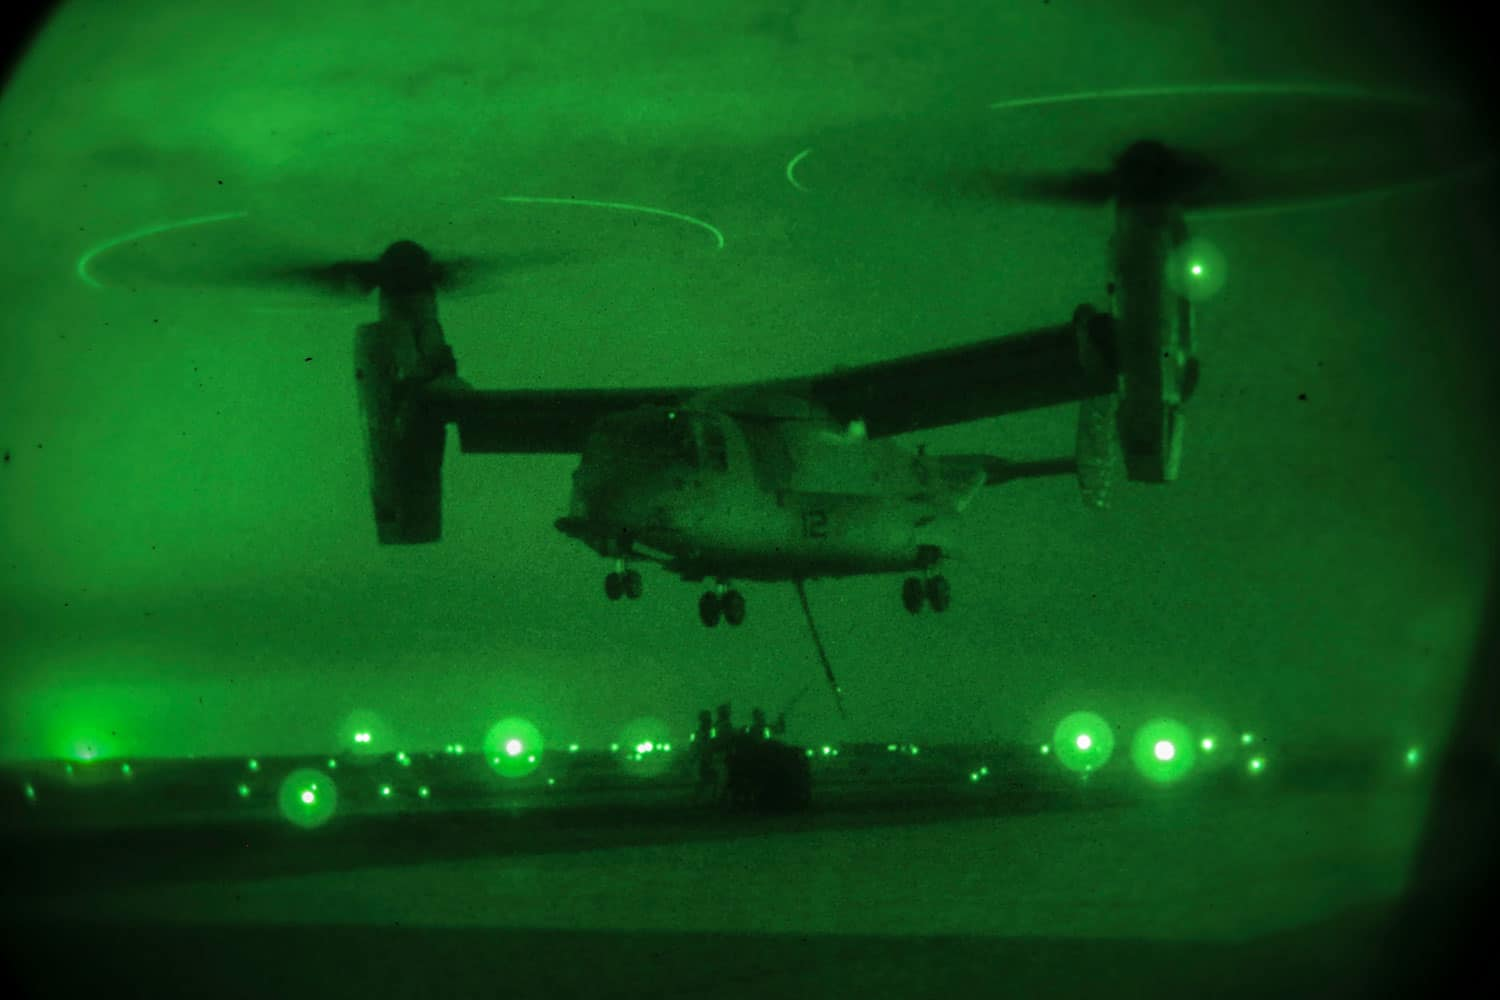 U.S. Marines with Combat Logistics Battalion 7, Special Purpose Marine Air-Ground Task Force-Crisis Response-Central Command, conduct a helicopter support team training operation with Marine Medium Tiltrotor Squadron 165 while forward deployed in the Middle East, March 10, 2017.